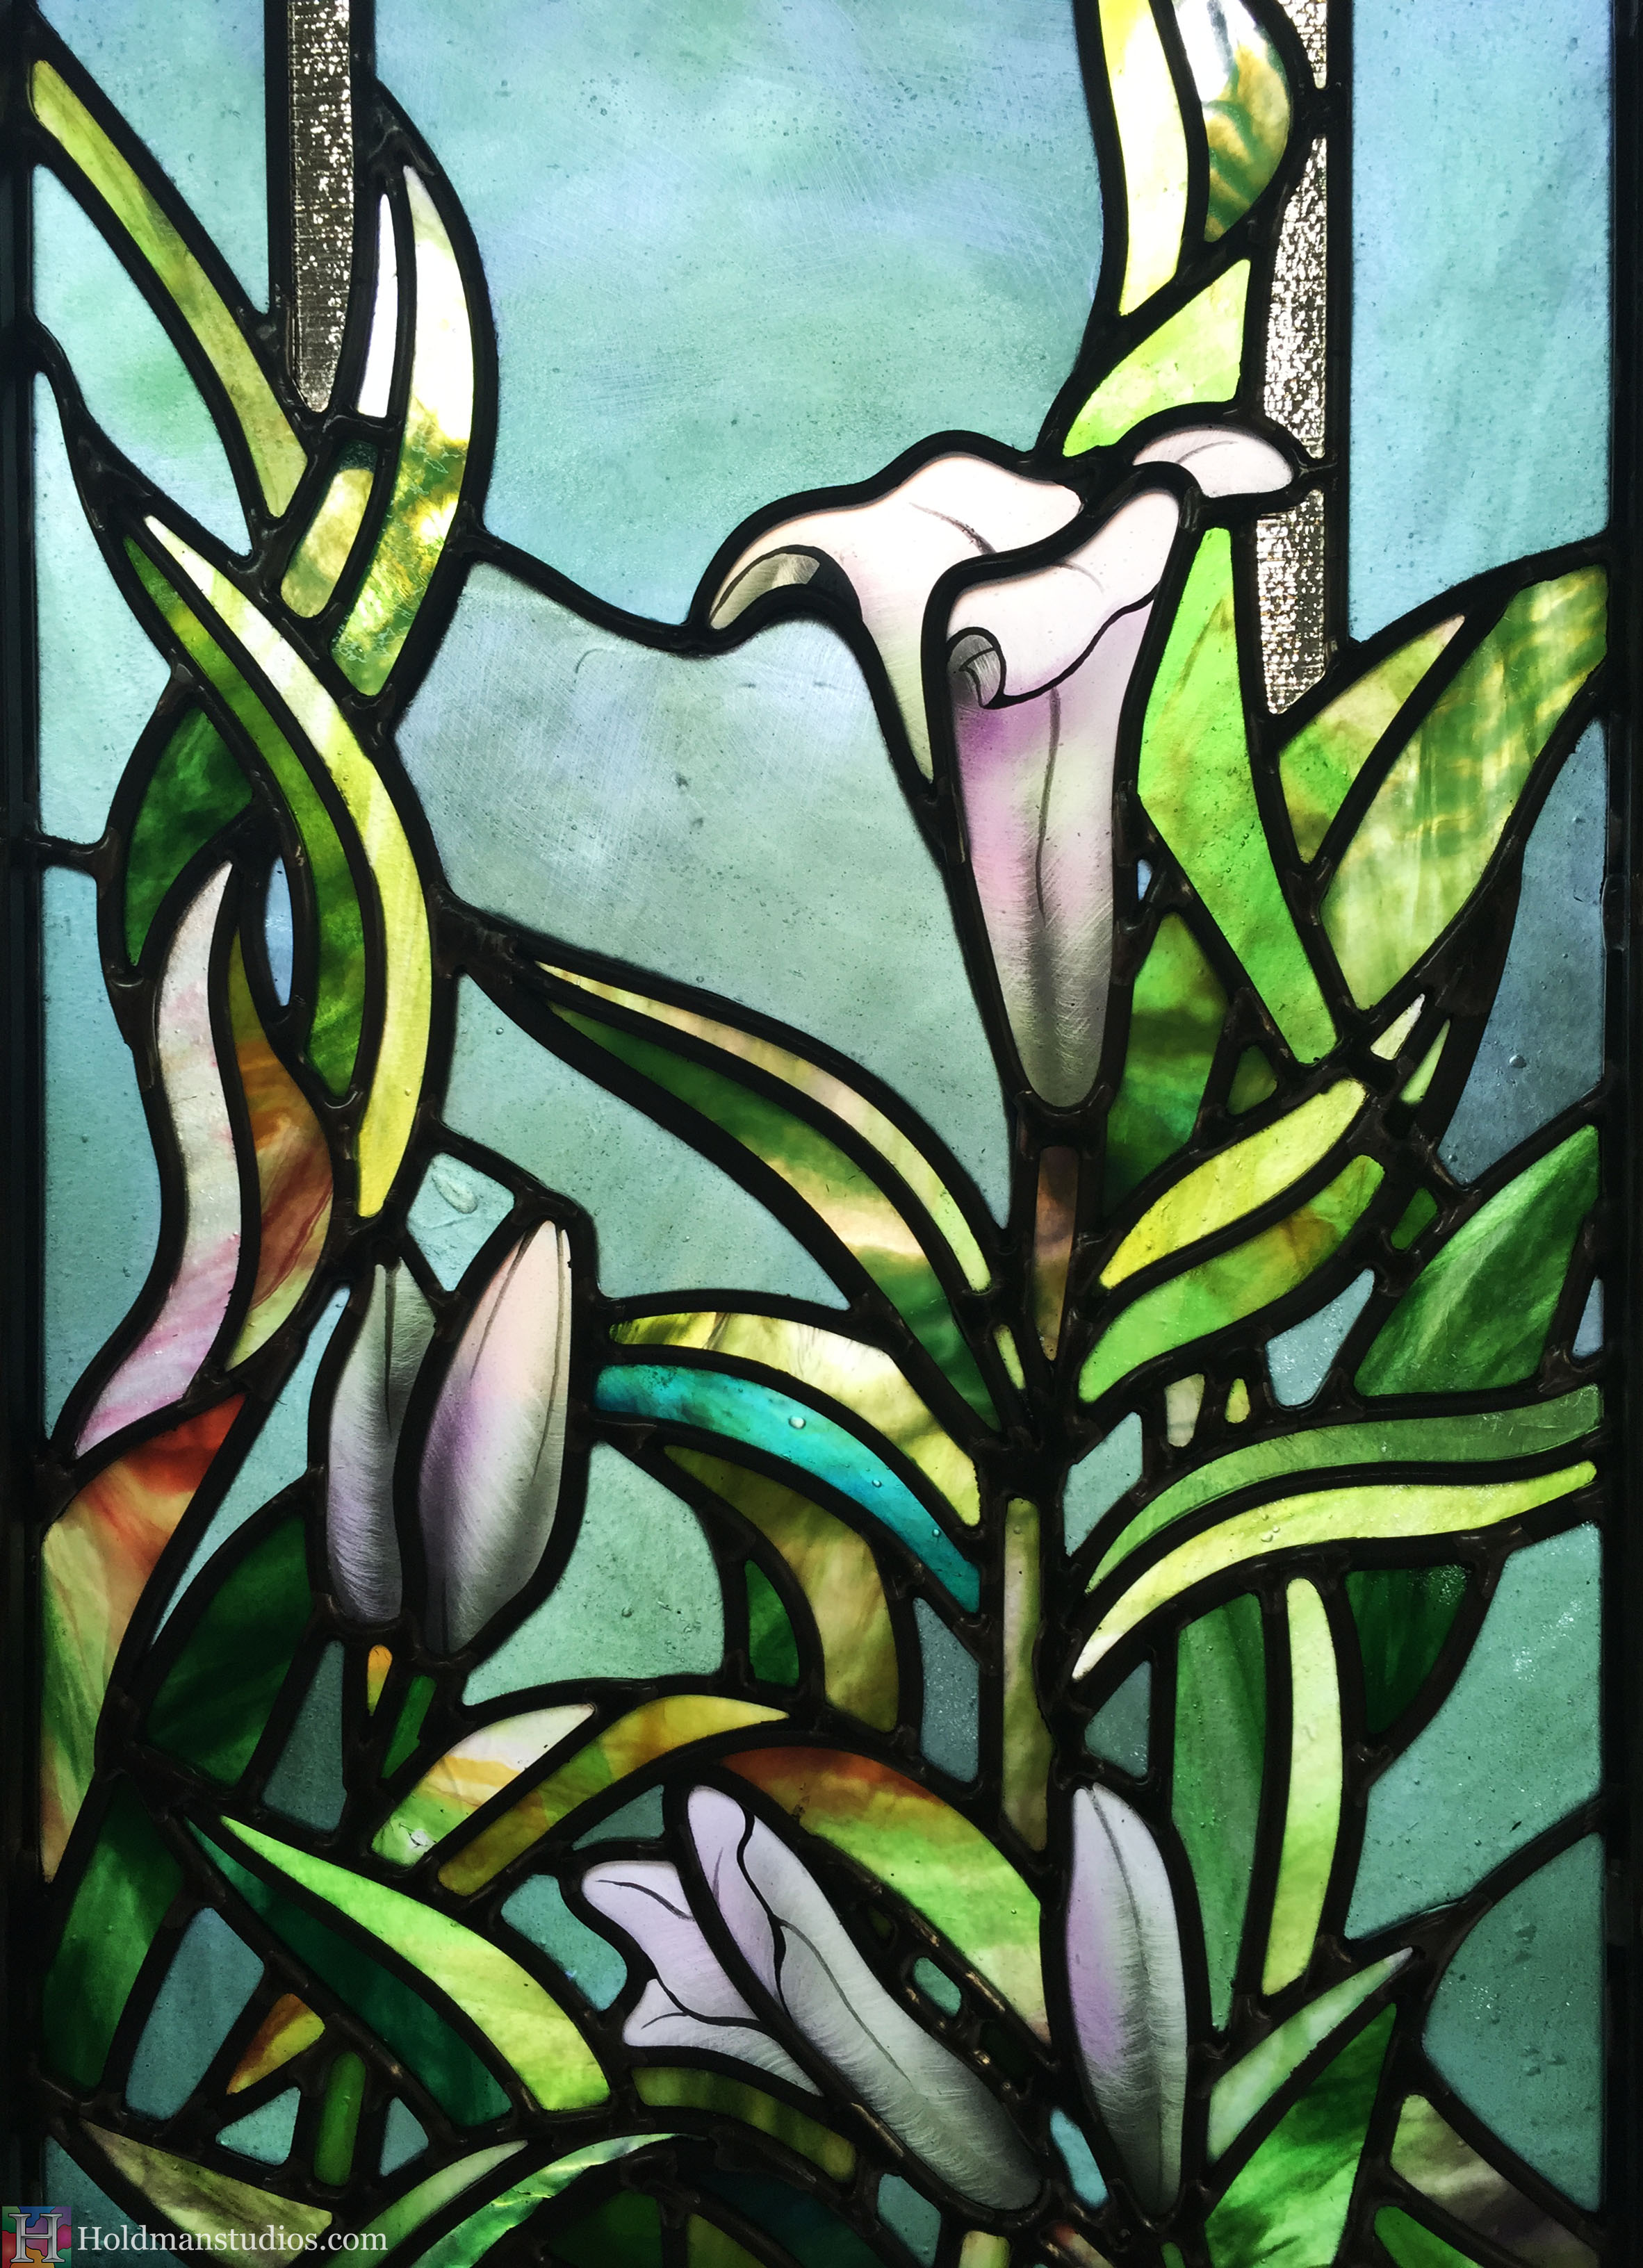 Holdman-Studios-Stained-Glass-Paris-LDS-Temple-Madonna-Lily-Flowers-Leaves-Window-Crop.jpg